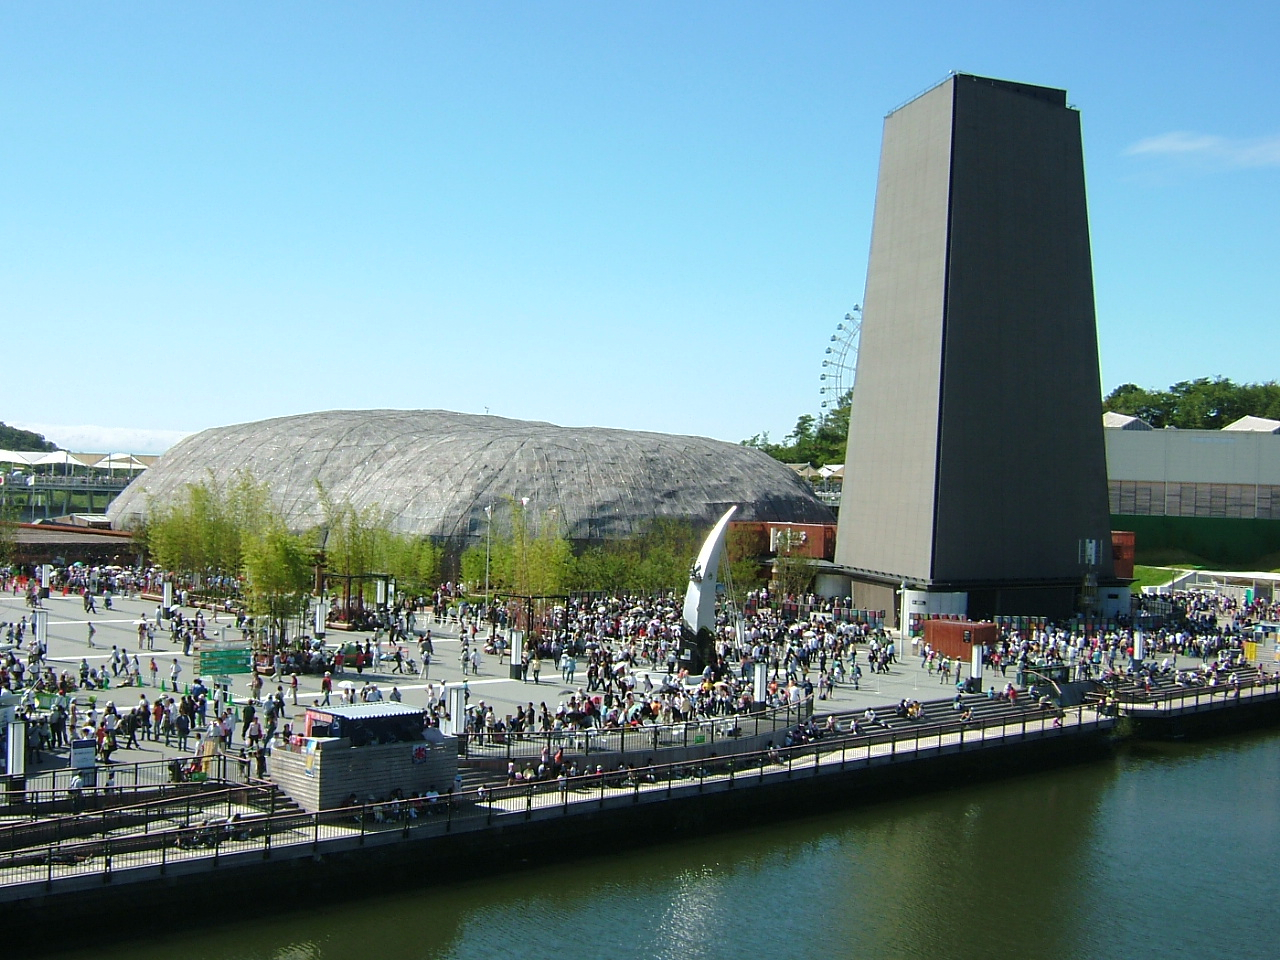 Aichi Japan  City pictures : ファイル:EXPO 2005 Aichi Japan in Japan Zone 01 Wikipedia